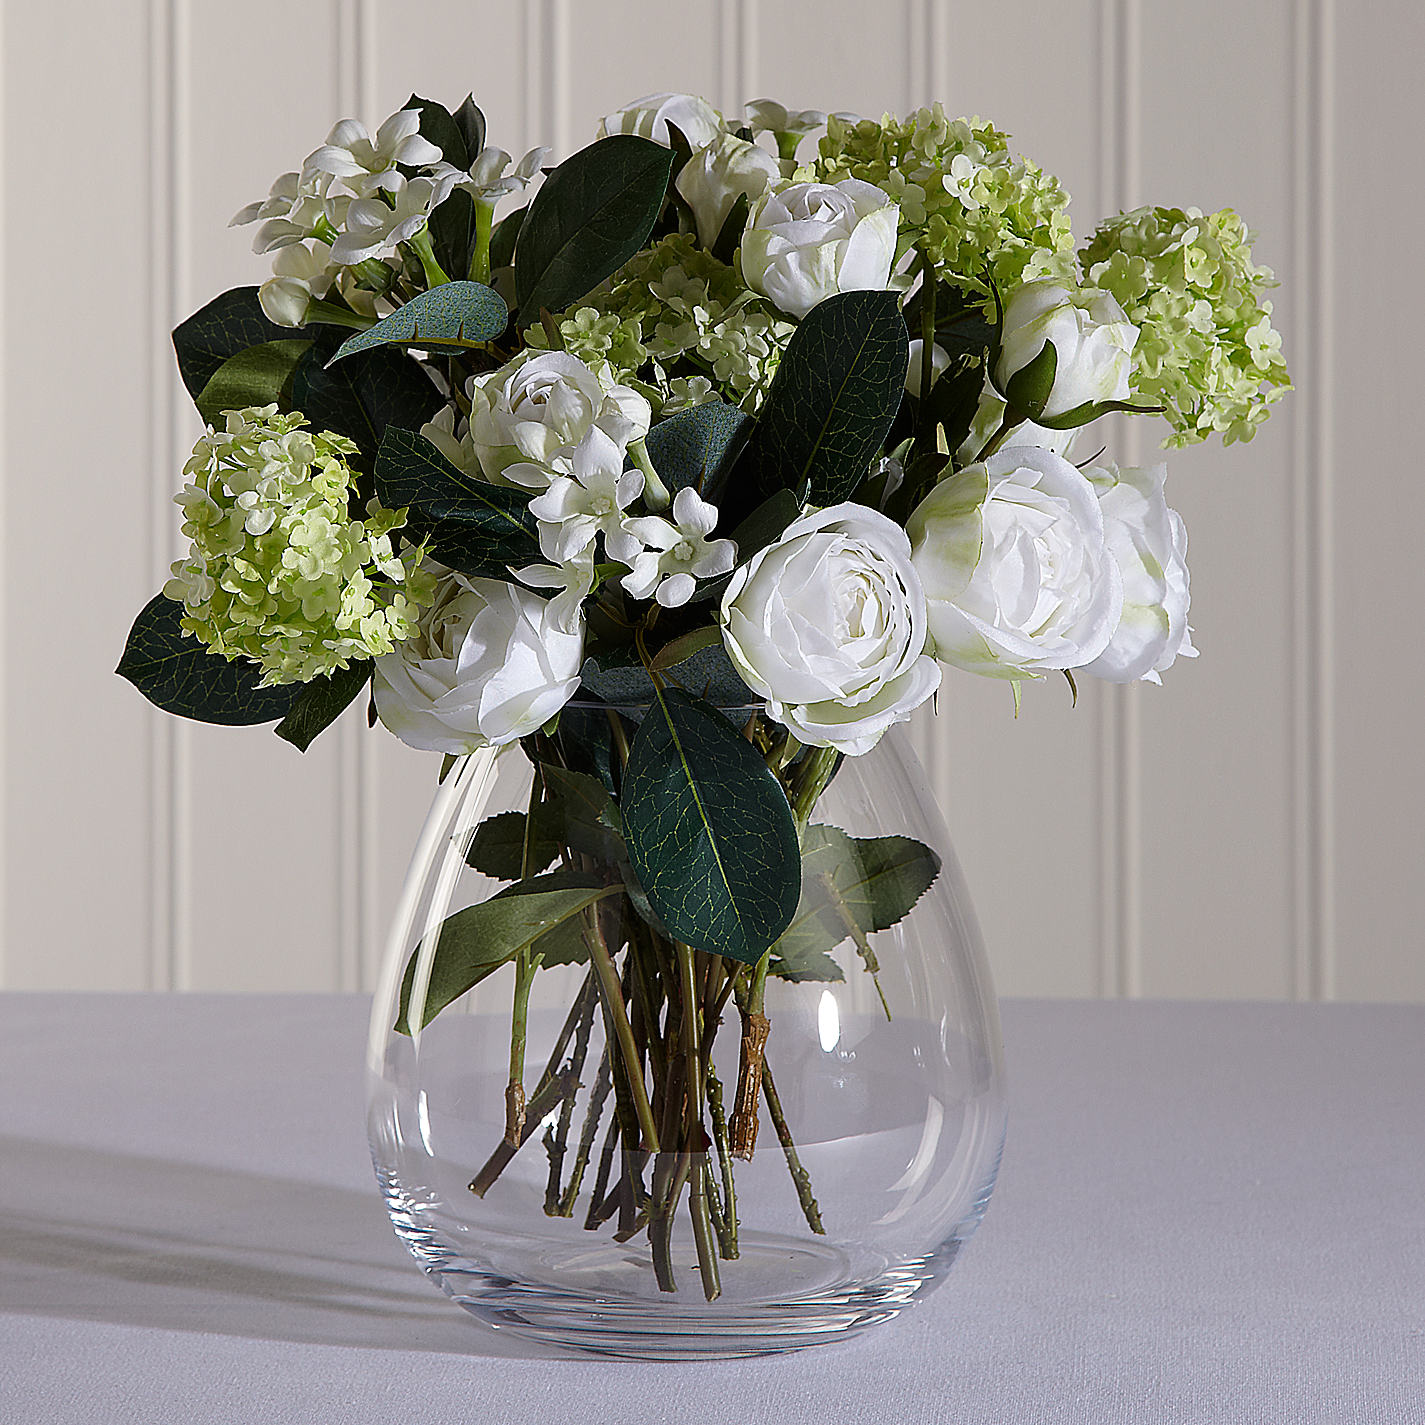 Buy lsa flower posy vase h17cm john lewis buy lsa flower posy vase h17cm online at johnlewis reviewsmspy